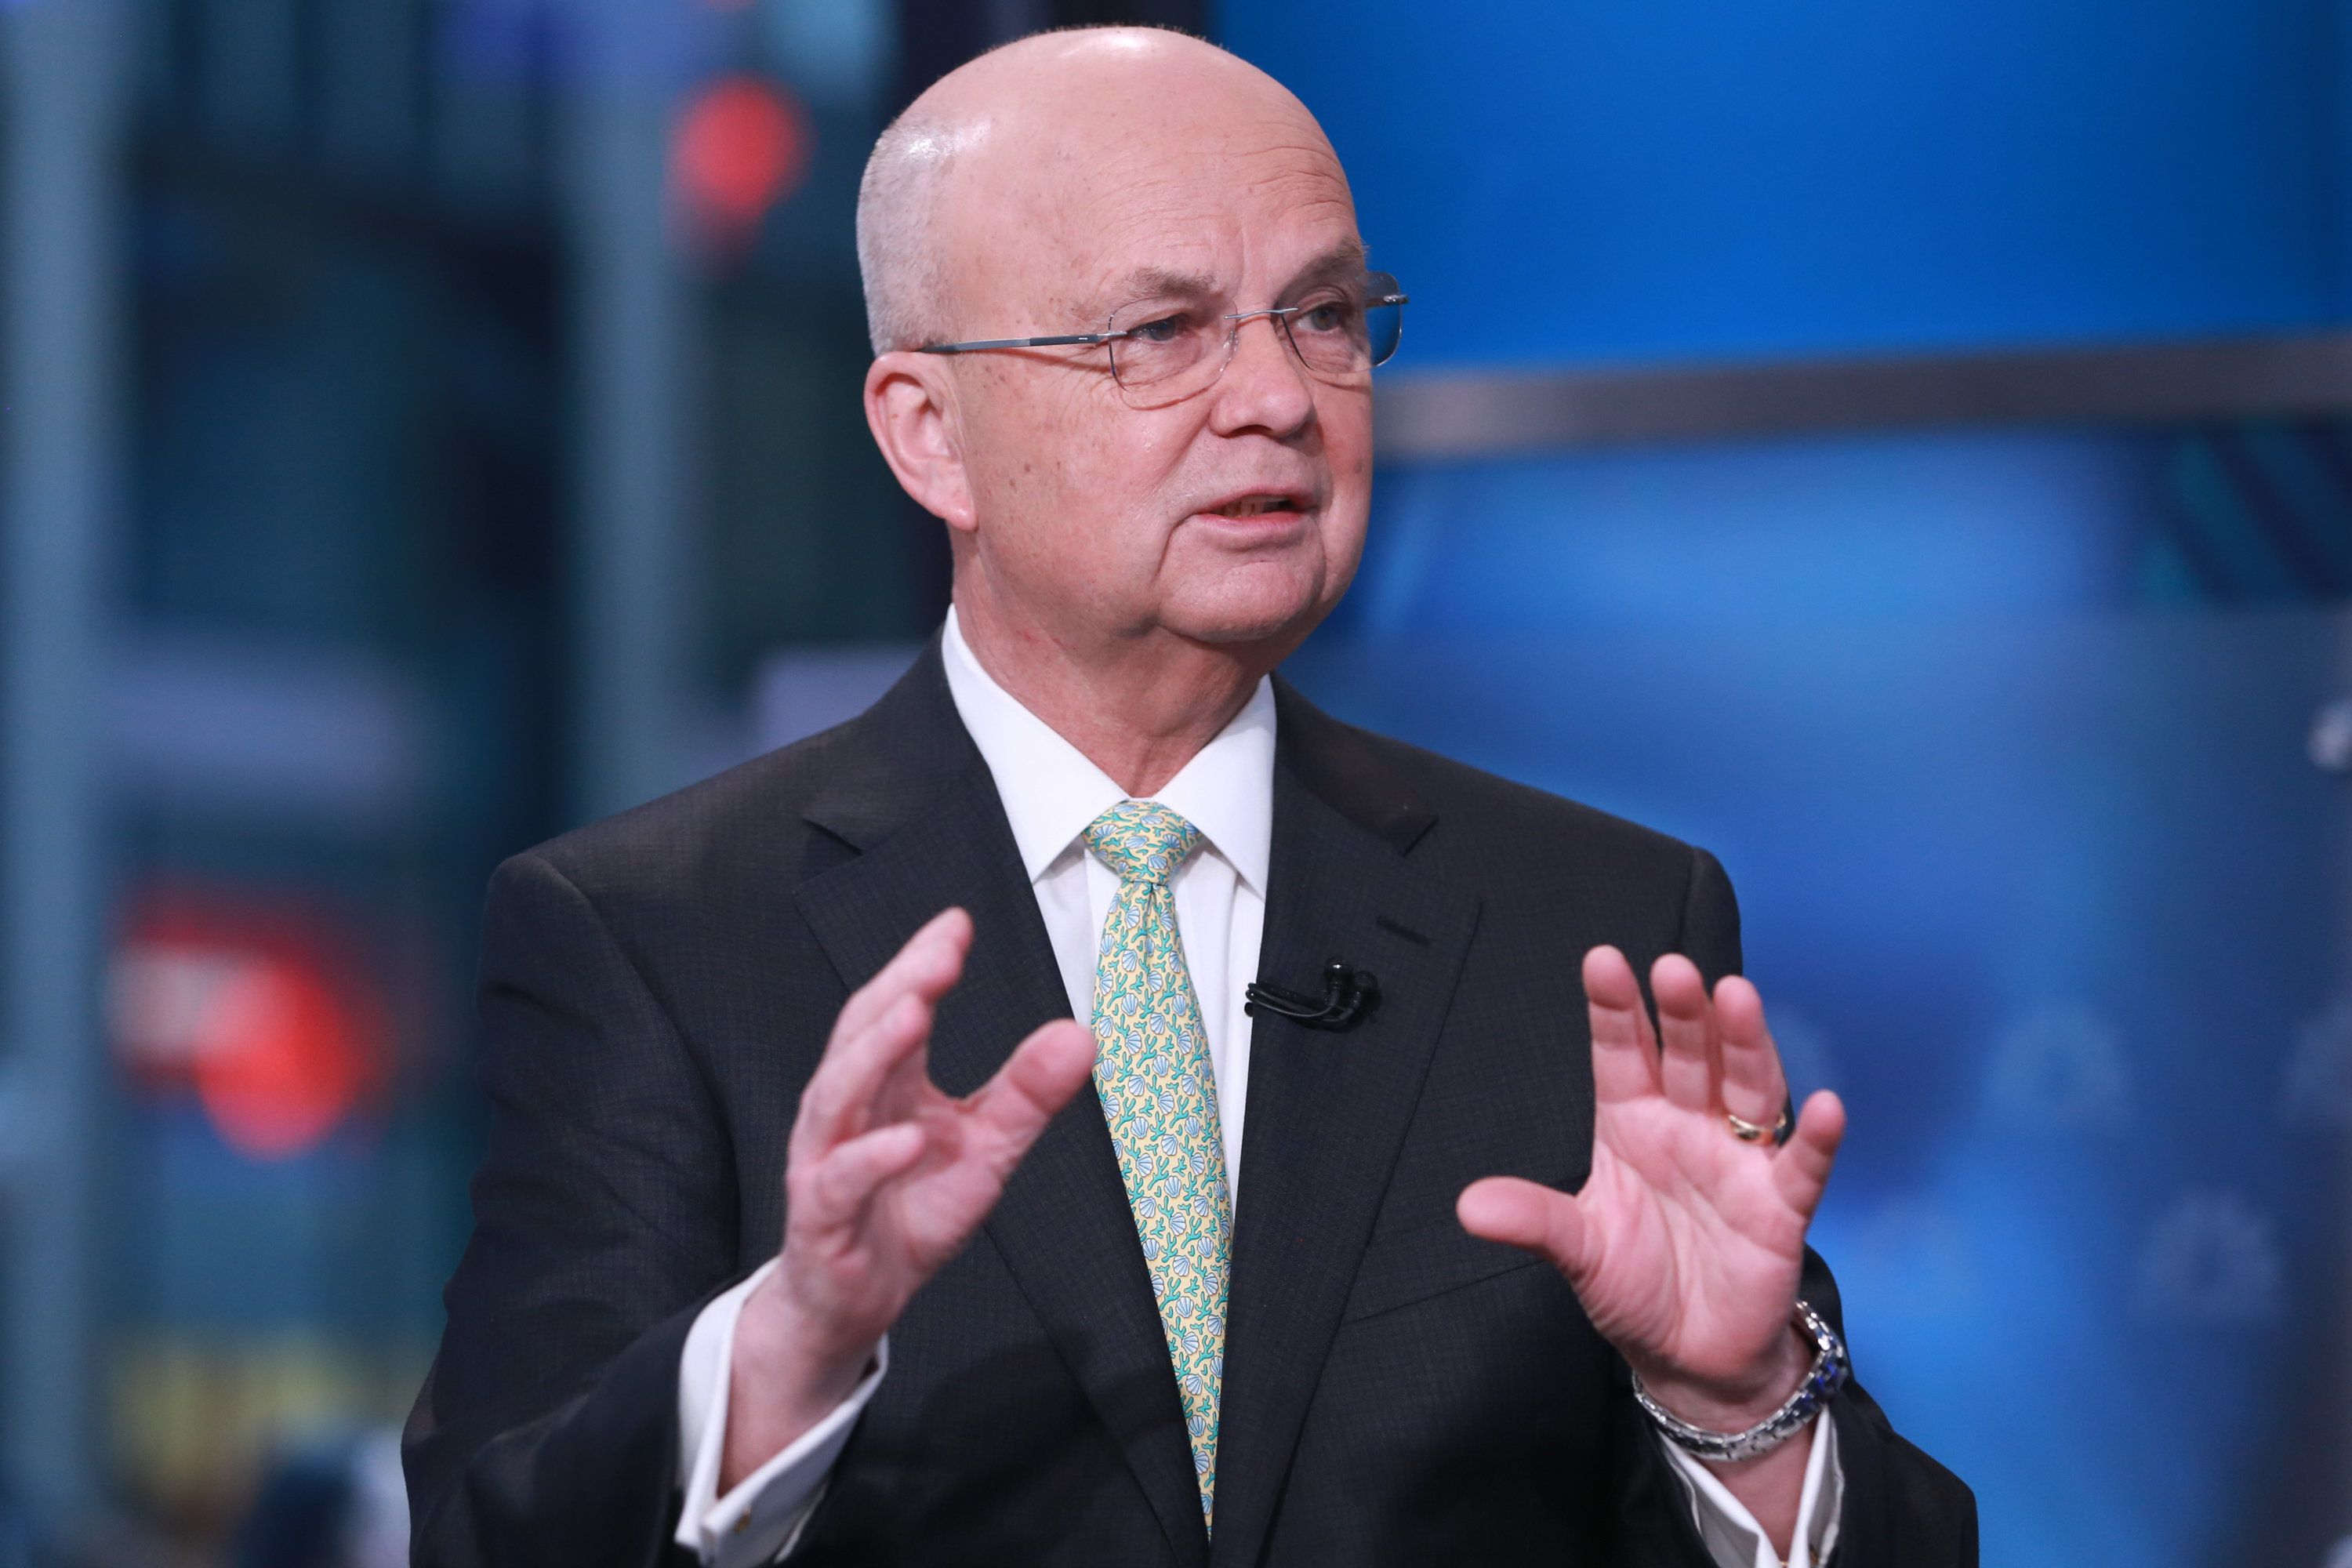 SQUAWK BOX -- Pictured: Michael Hayden, former CIA and NSA director, comments on the ongoing Apple vs. FBI dispute in an interview on February 23, 2016 -- (Photo by: David Orrell/CNBC/NBCU Photo Bank via Getty Images)